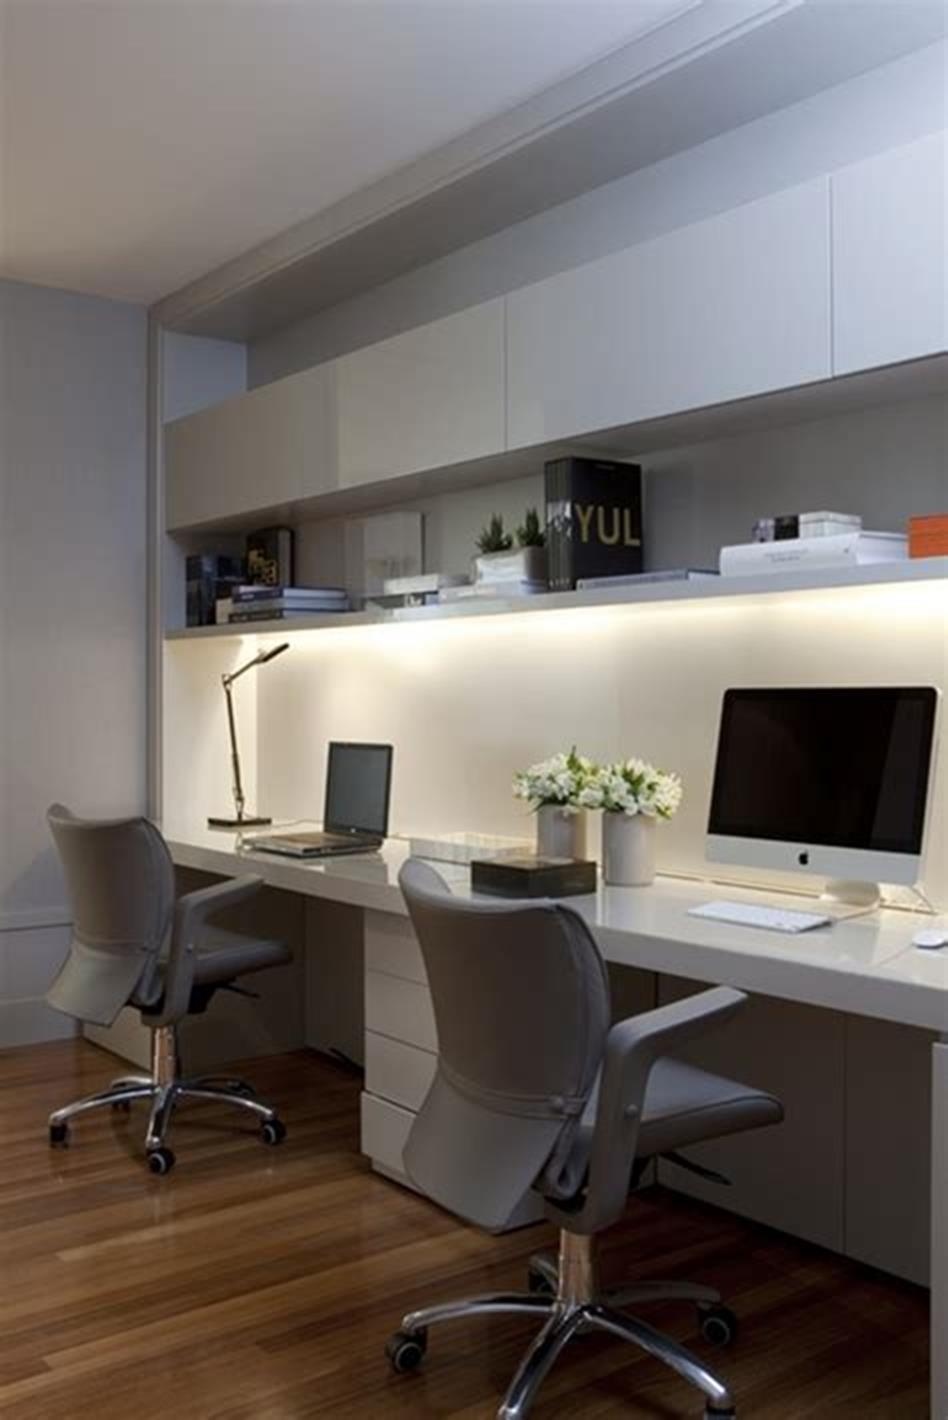 50 Best Small Space Office Decorating Ideas On a Budget 2019 29